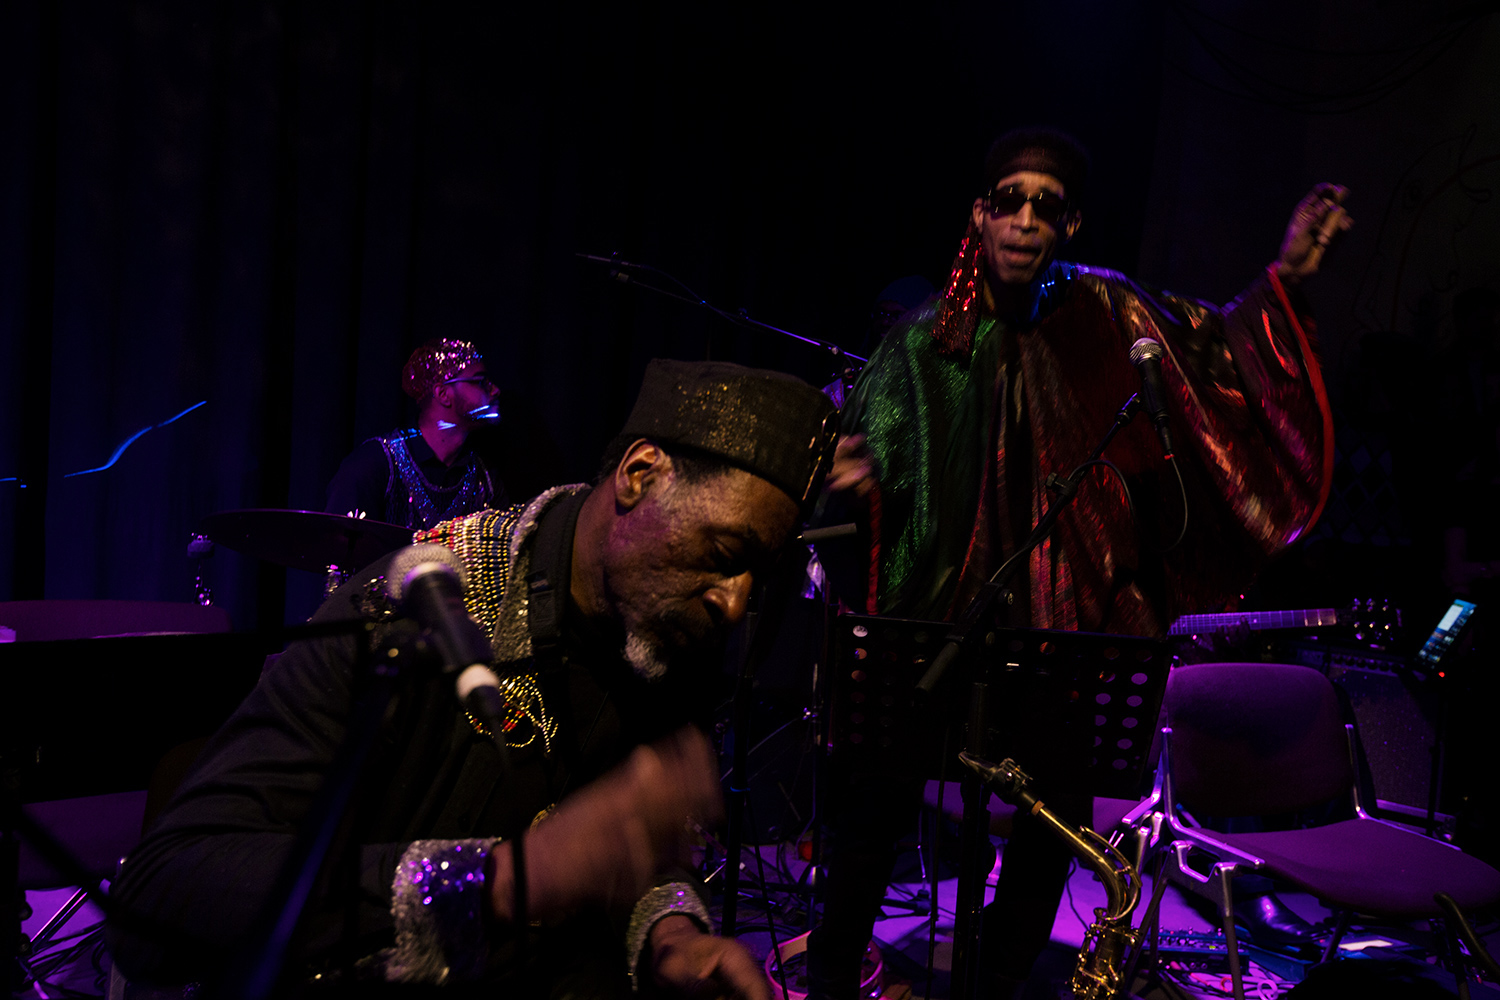 Sun Ra Arkestra directed by Marshall Allen by Laurent Orseau - Concert - Les Ateliers Claus - Brussels, Belgium #7